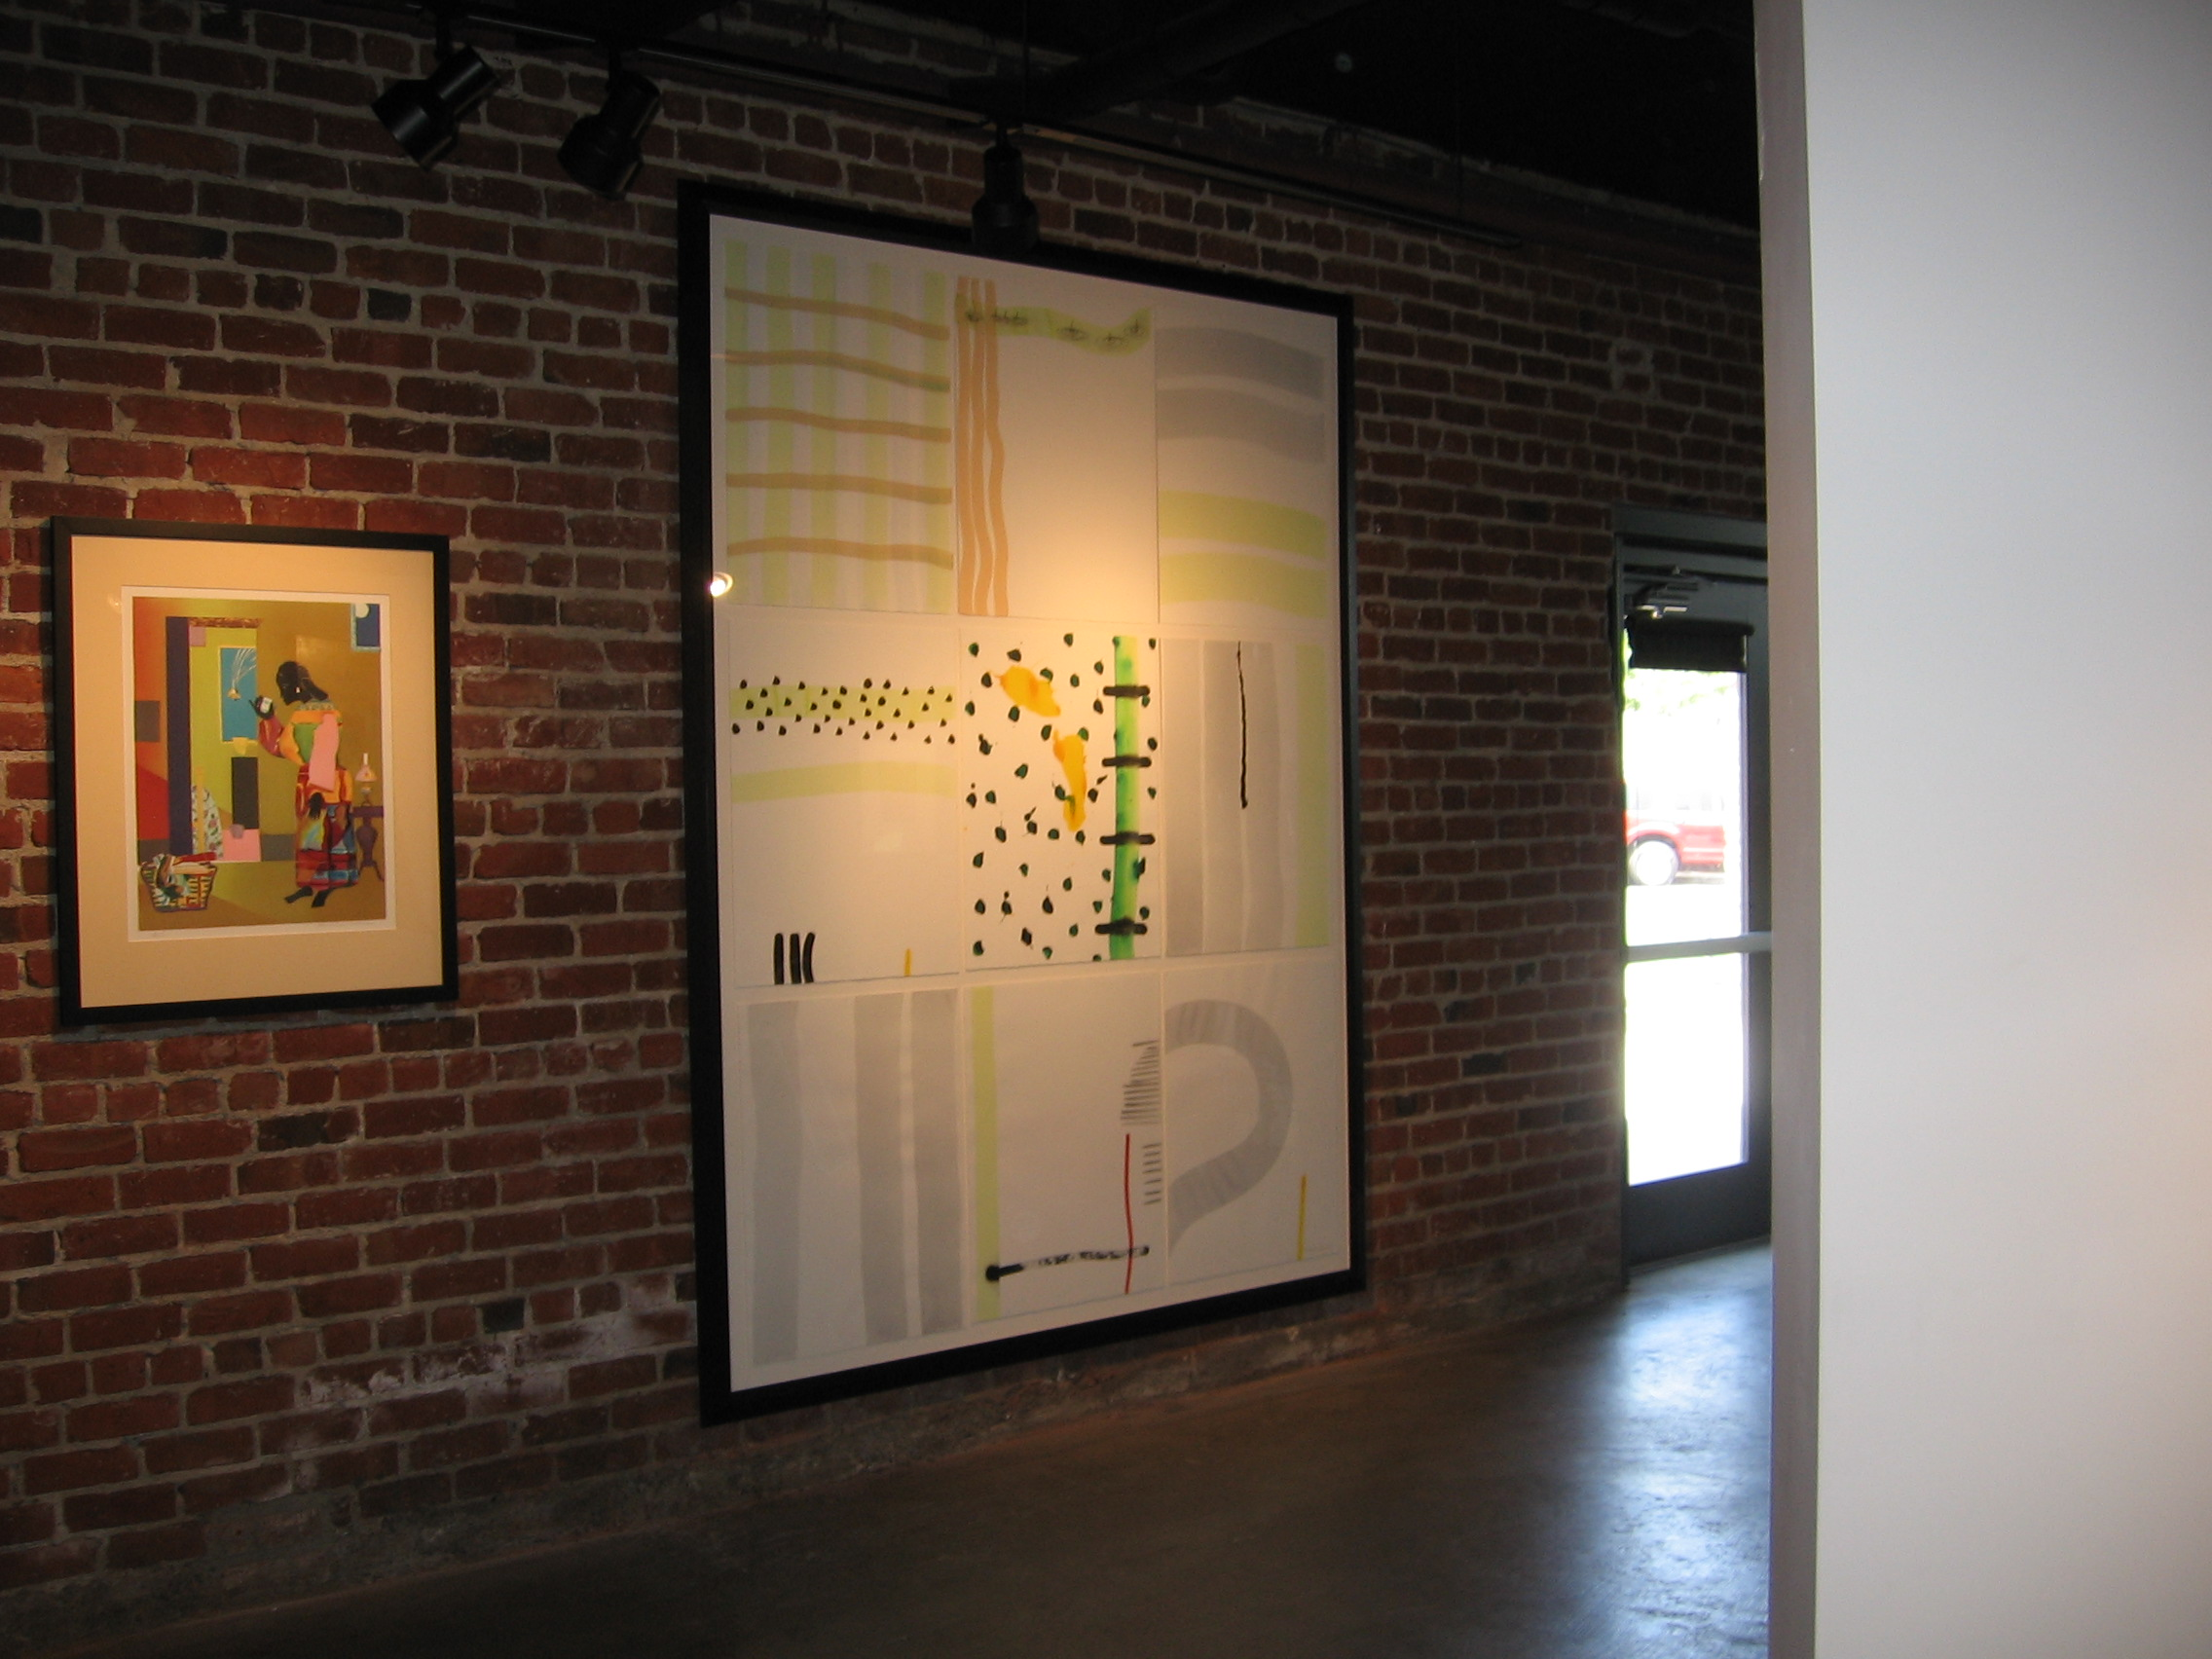 Installation at 40 Acres Gallery